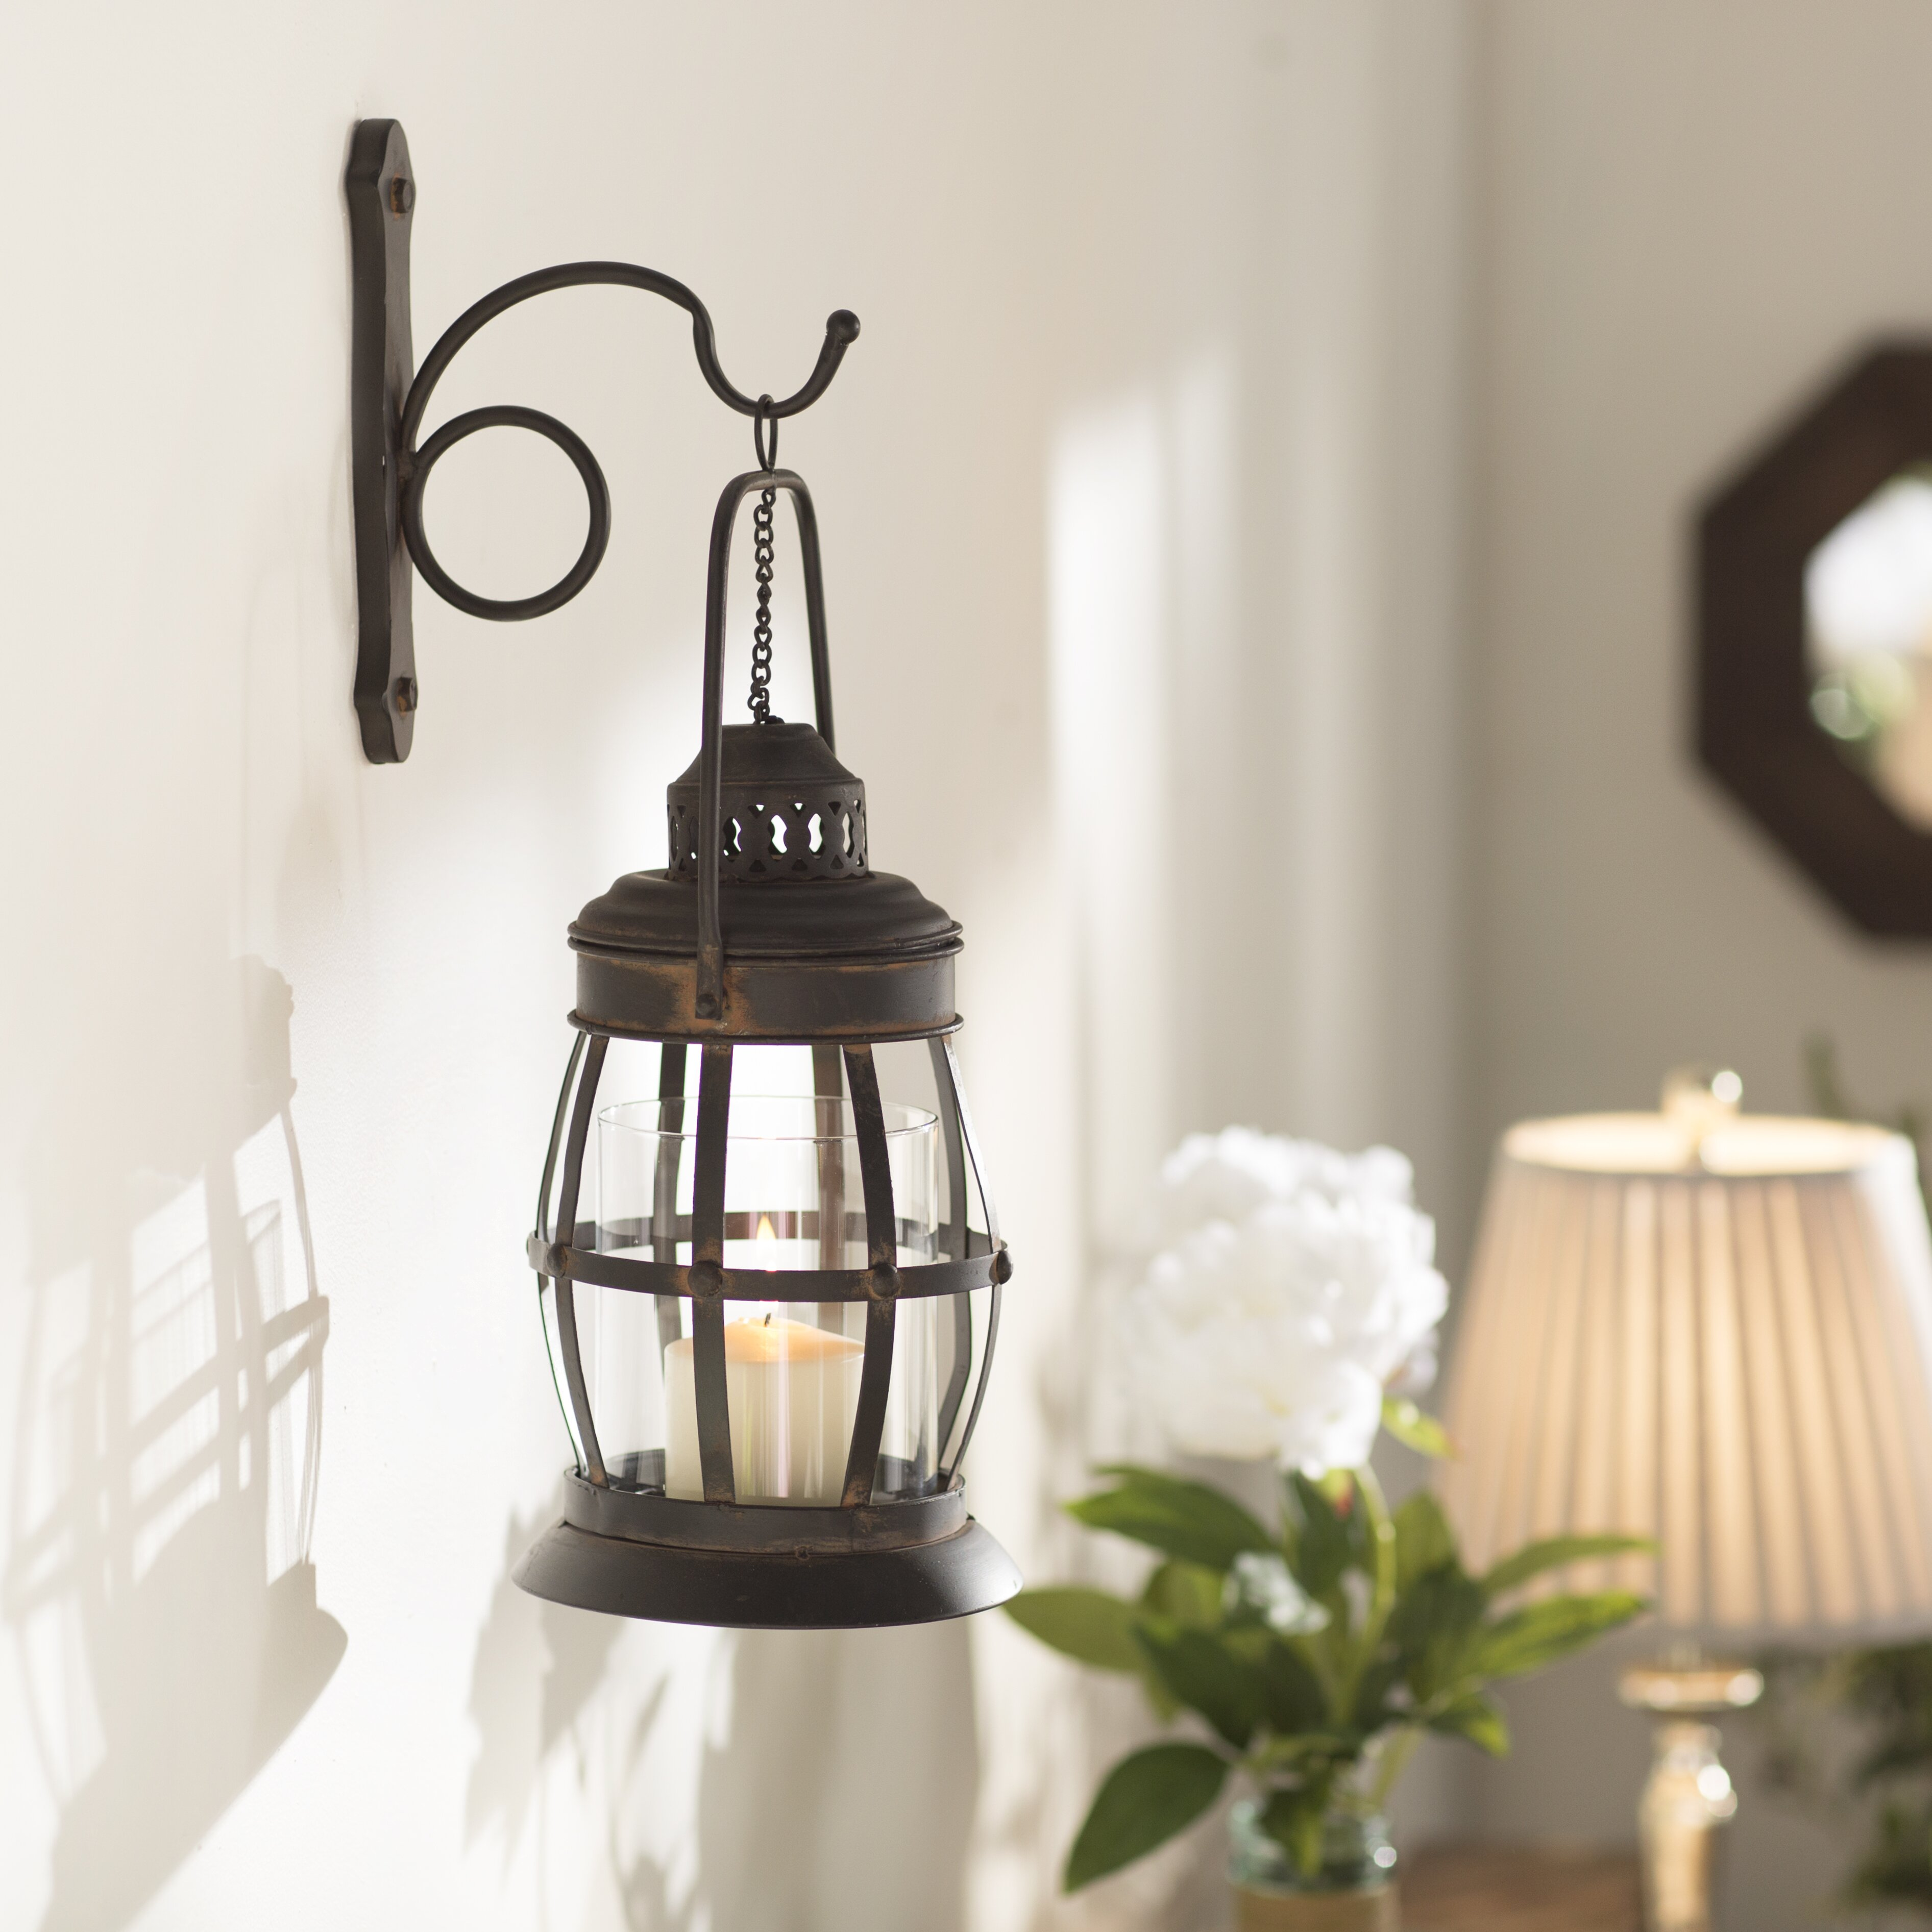 Decorative Candle Wall Sconces For Living Room : Three Posts Gala 1 Light Wall Sconce & Reviews Wayfair